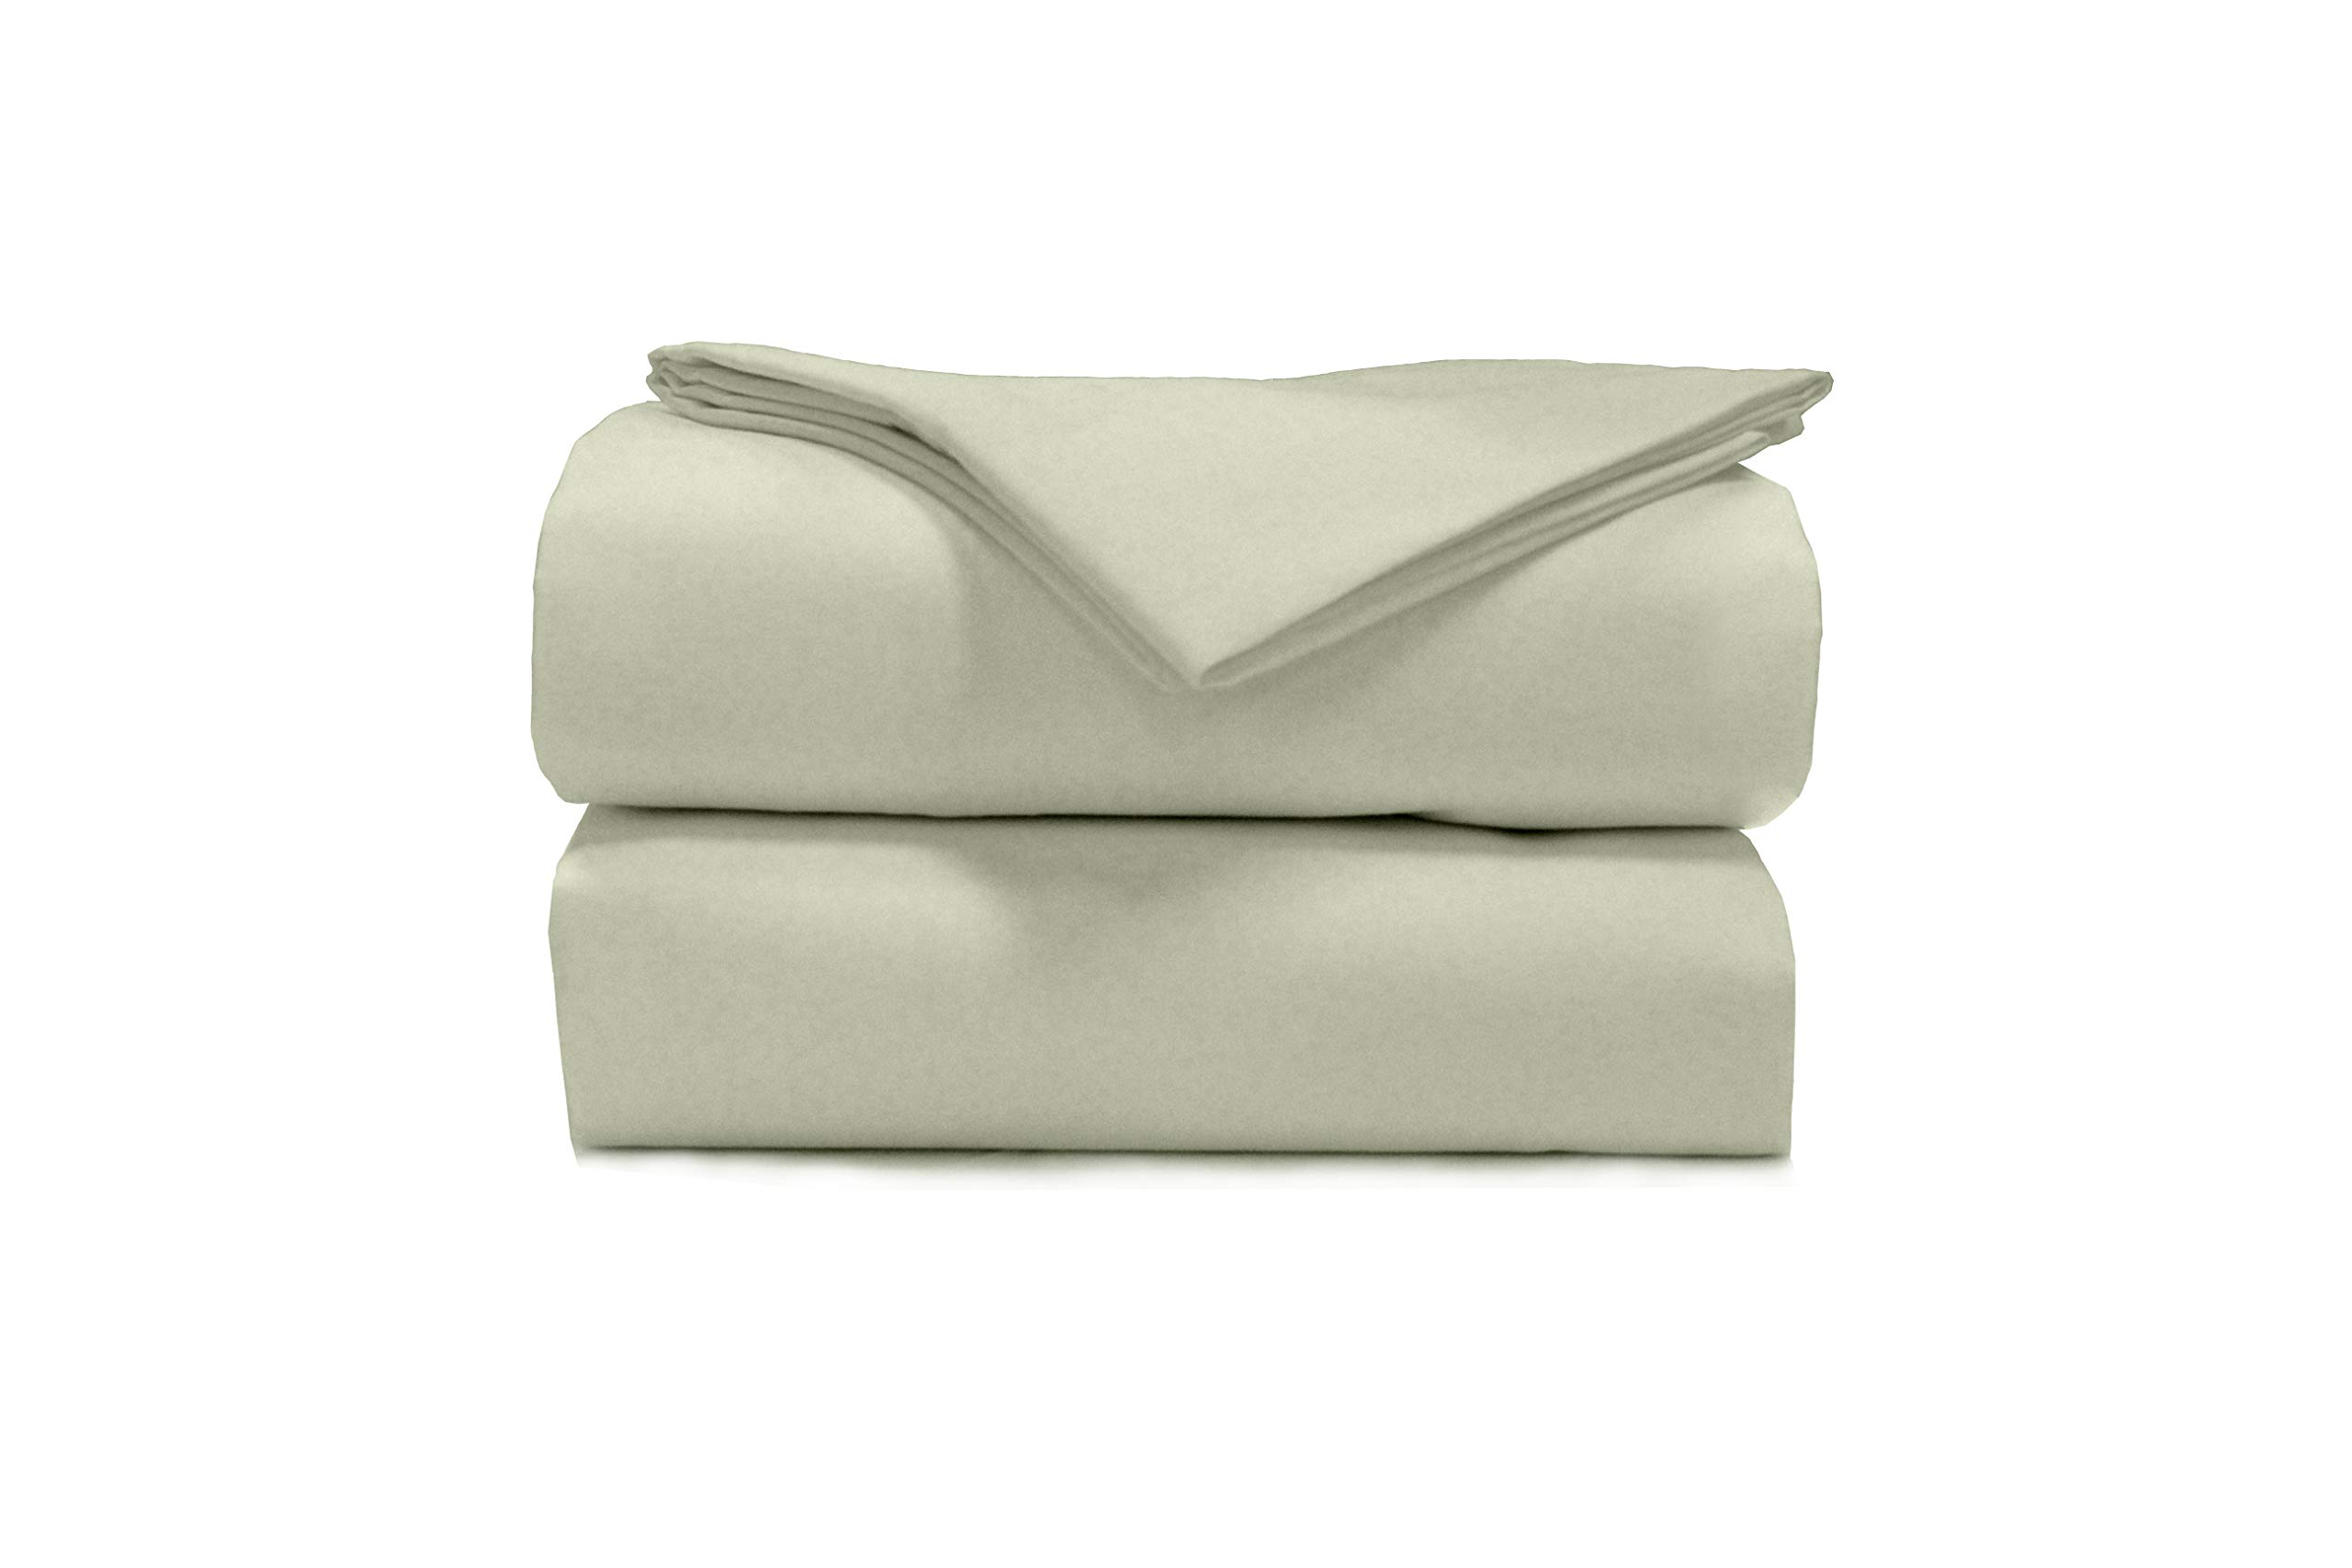 "Bunk 28x75 Camper RV Sheet Set 100% cotton Color: Sage Green - Sheet set made specifically for ""odd-sized"" mattresses found in a Camper, RV, Travel Trailer or Motorhome Measures: 28x75 inches for a mattress up to 7 inches thick Color: Beautiful SAGE GREEN color - sheet-sets, bedroom-sheets-comforters, bedroom - 71N8uYNUnGL -"